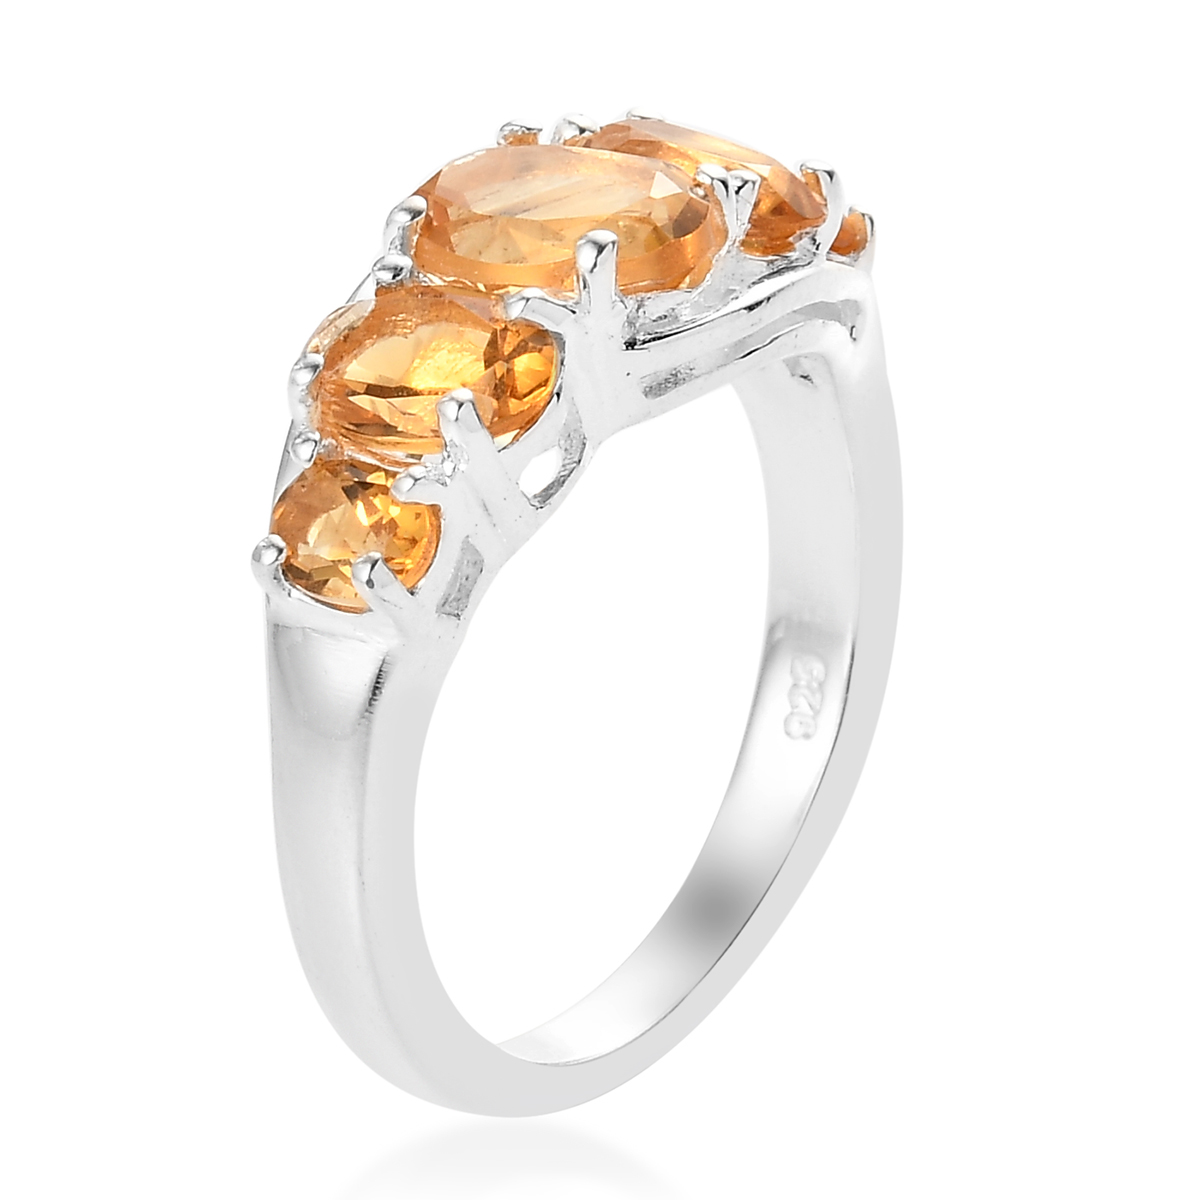 Oval-Citrine-5-Stone-Statement-Promise-Ring-925-Sterling-Silver-Jewelry thumbnail 4